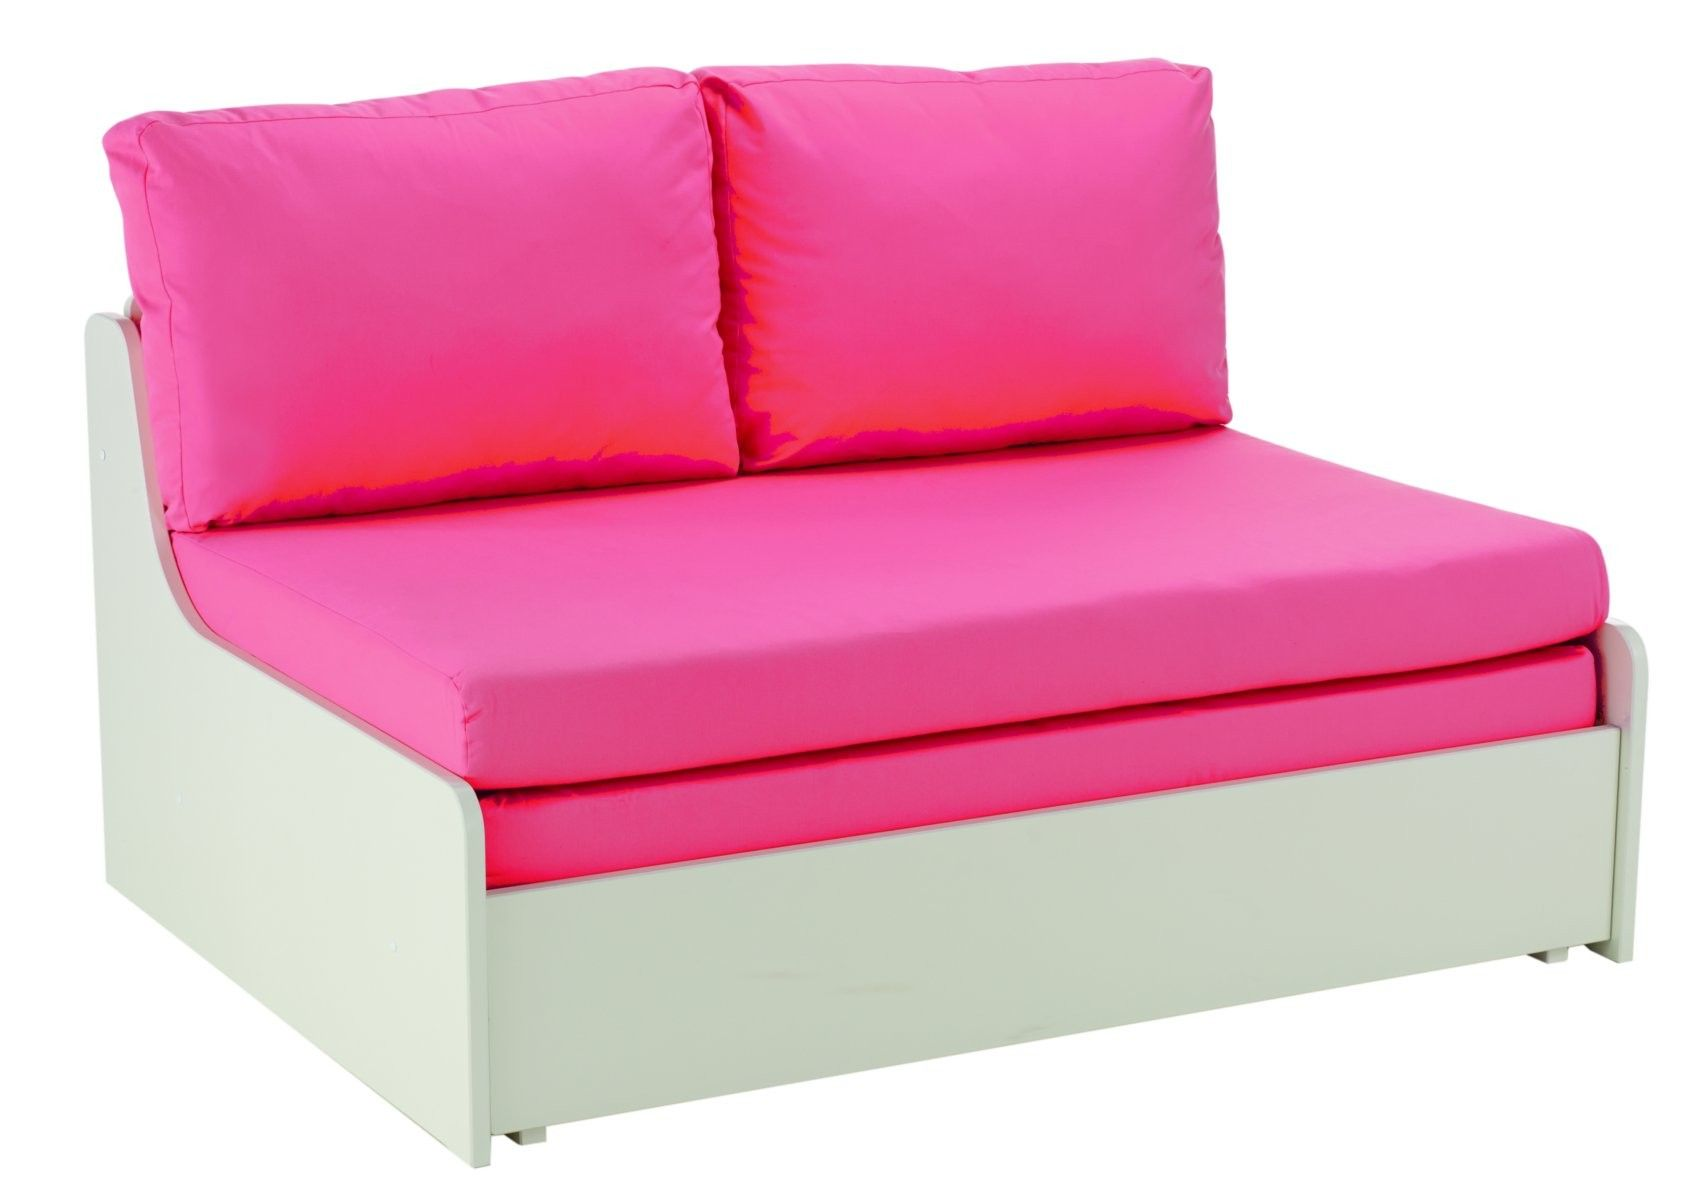 This Pink Futon Style Sofa Bed Is A Perfect Addition To Your Child S Room Offering A Clever Sleep Over Solution This S Pink Sofa Bed Double Sofa Bed Sofa Bed